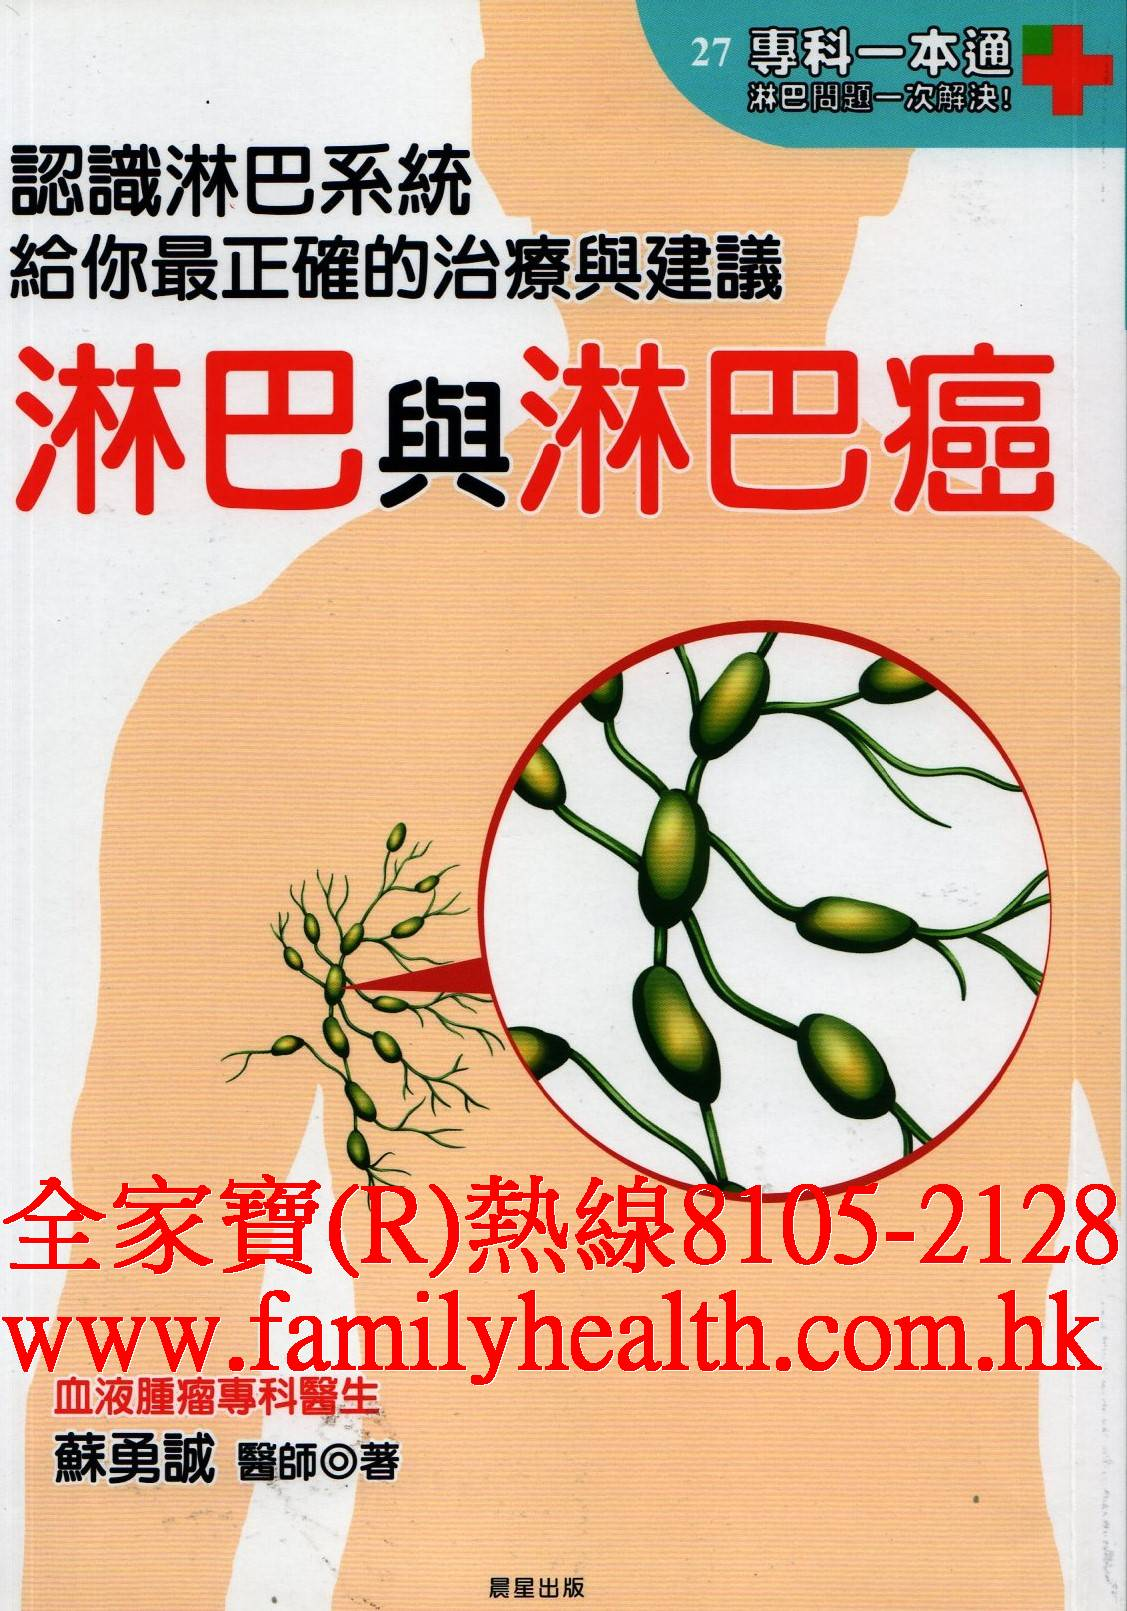 http://www.familyhealth.com.hk/files/full/1165_0.jpg